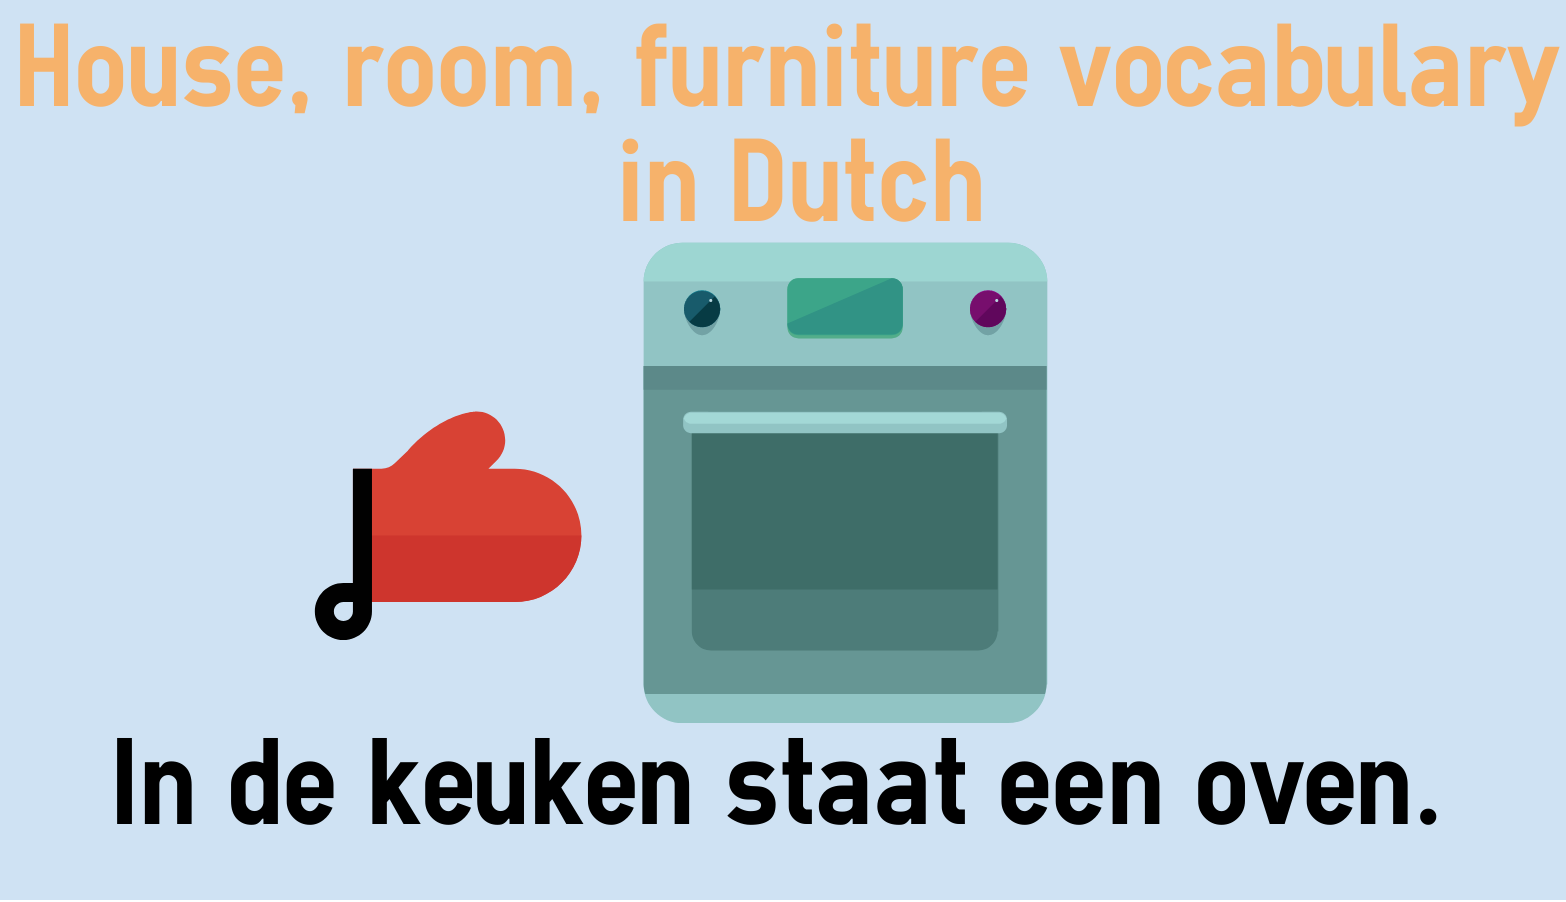 House, room, furniture vocabulary in Dutch